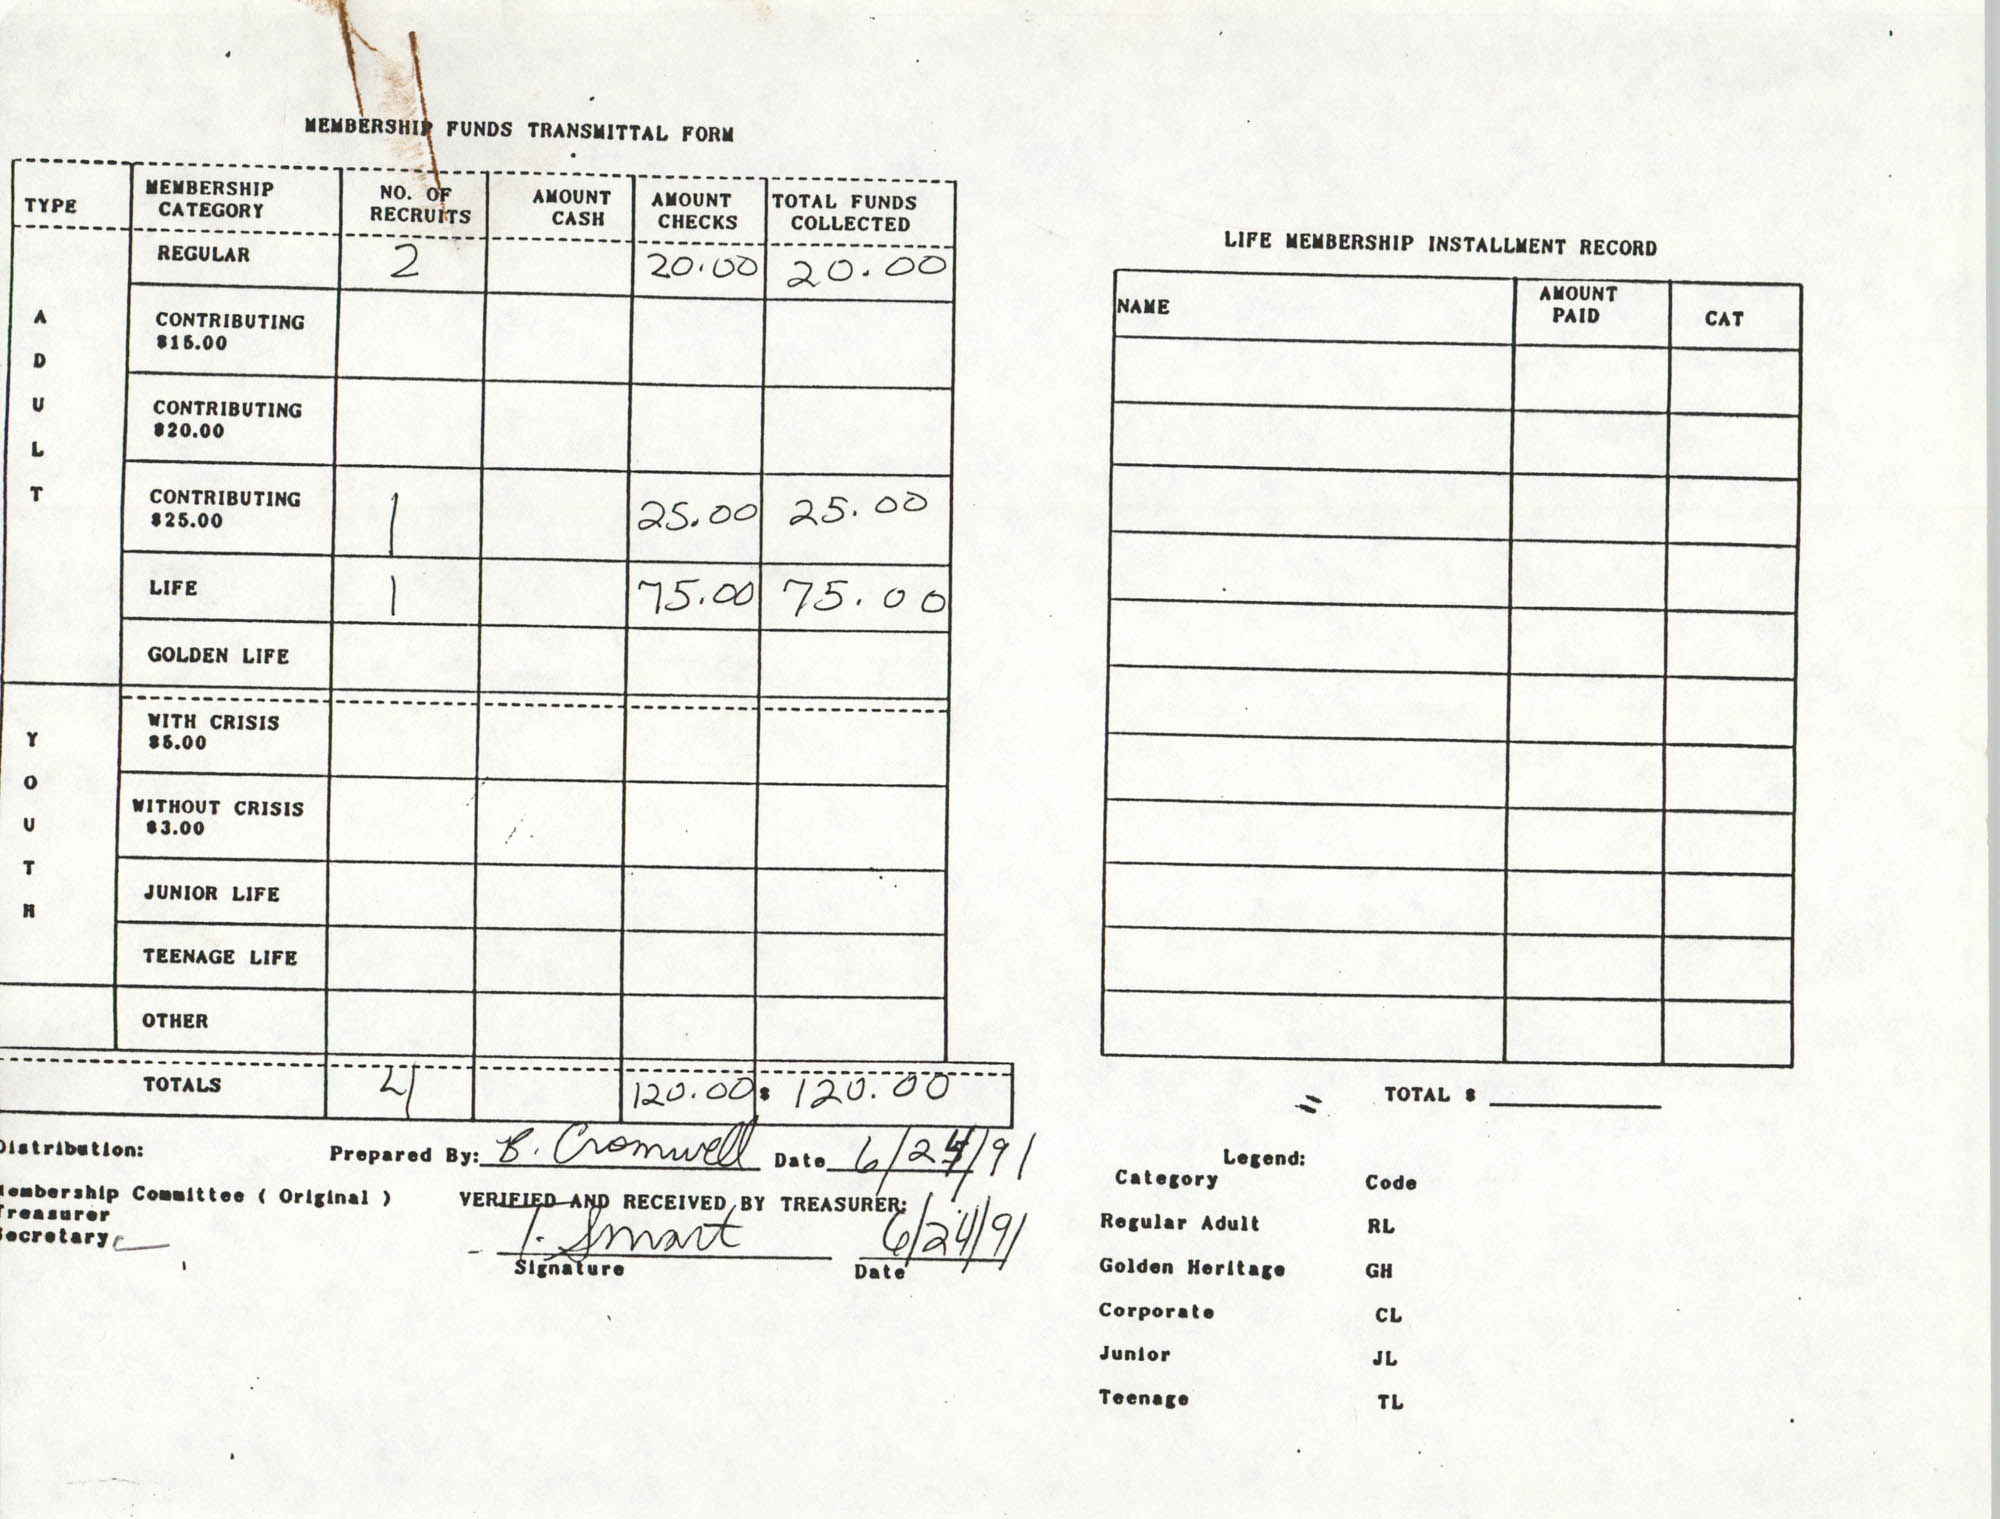 Charleston Branch of the NAACP Funds Transmittal Forms, June 1991, Page 7